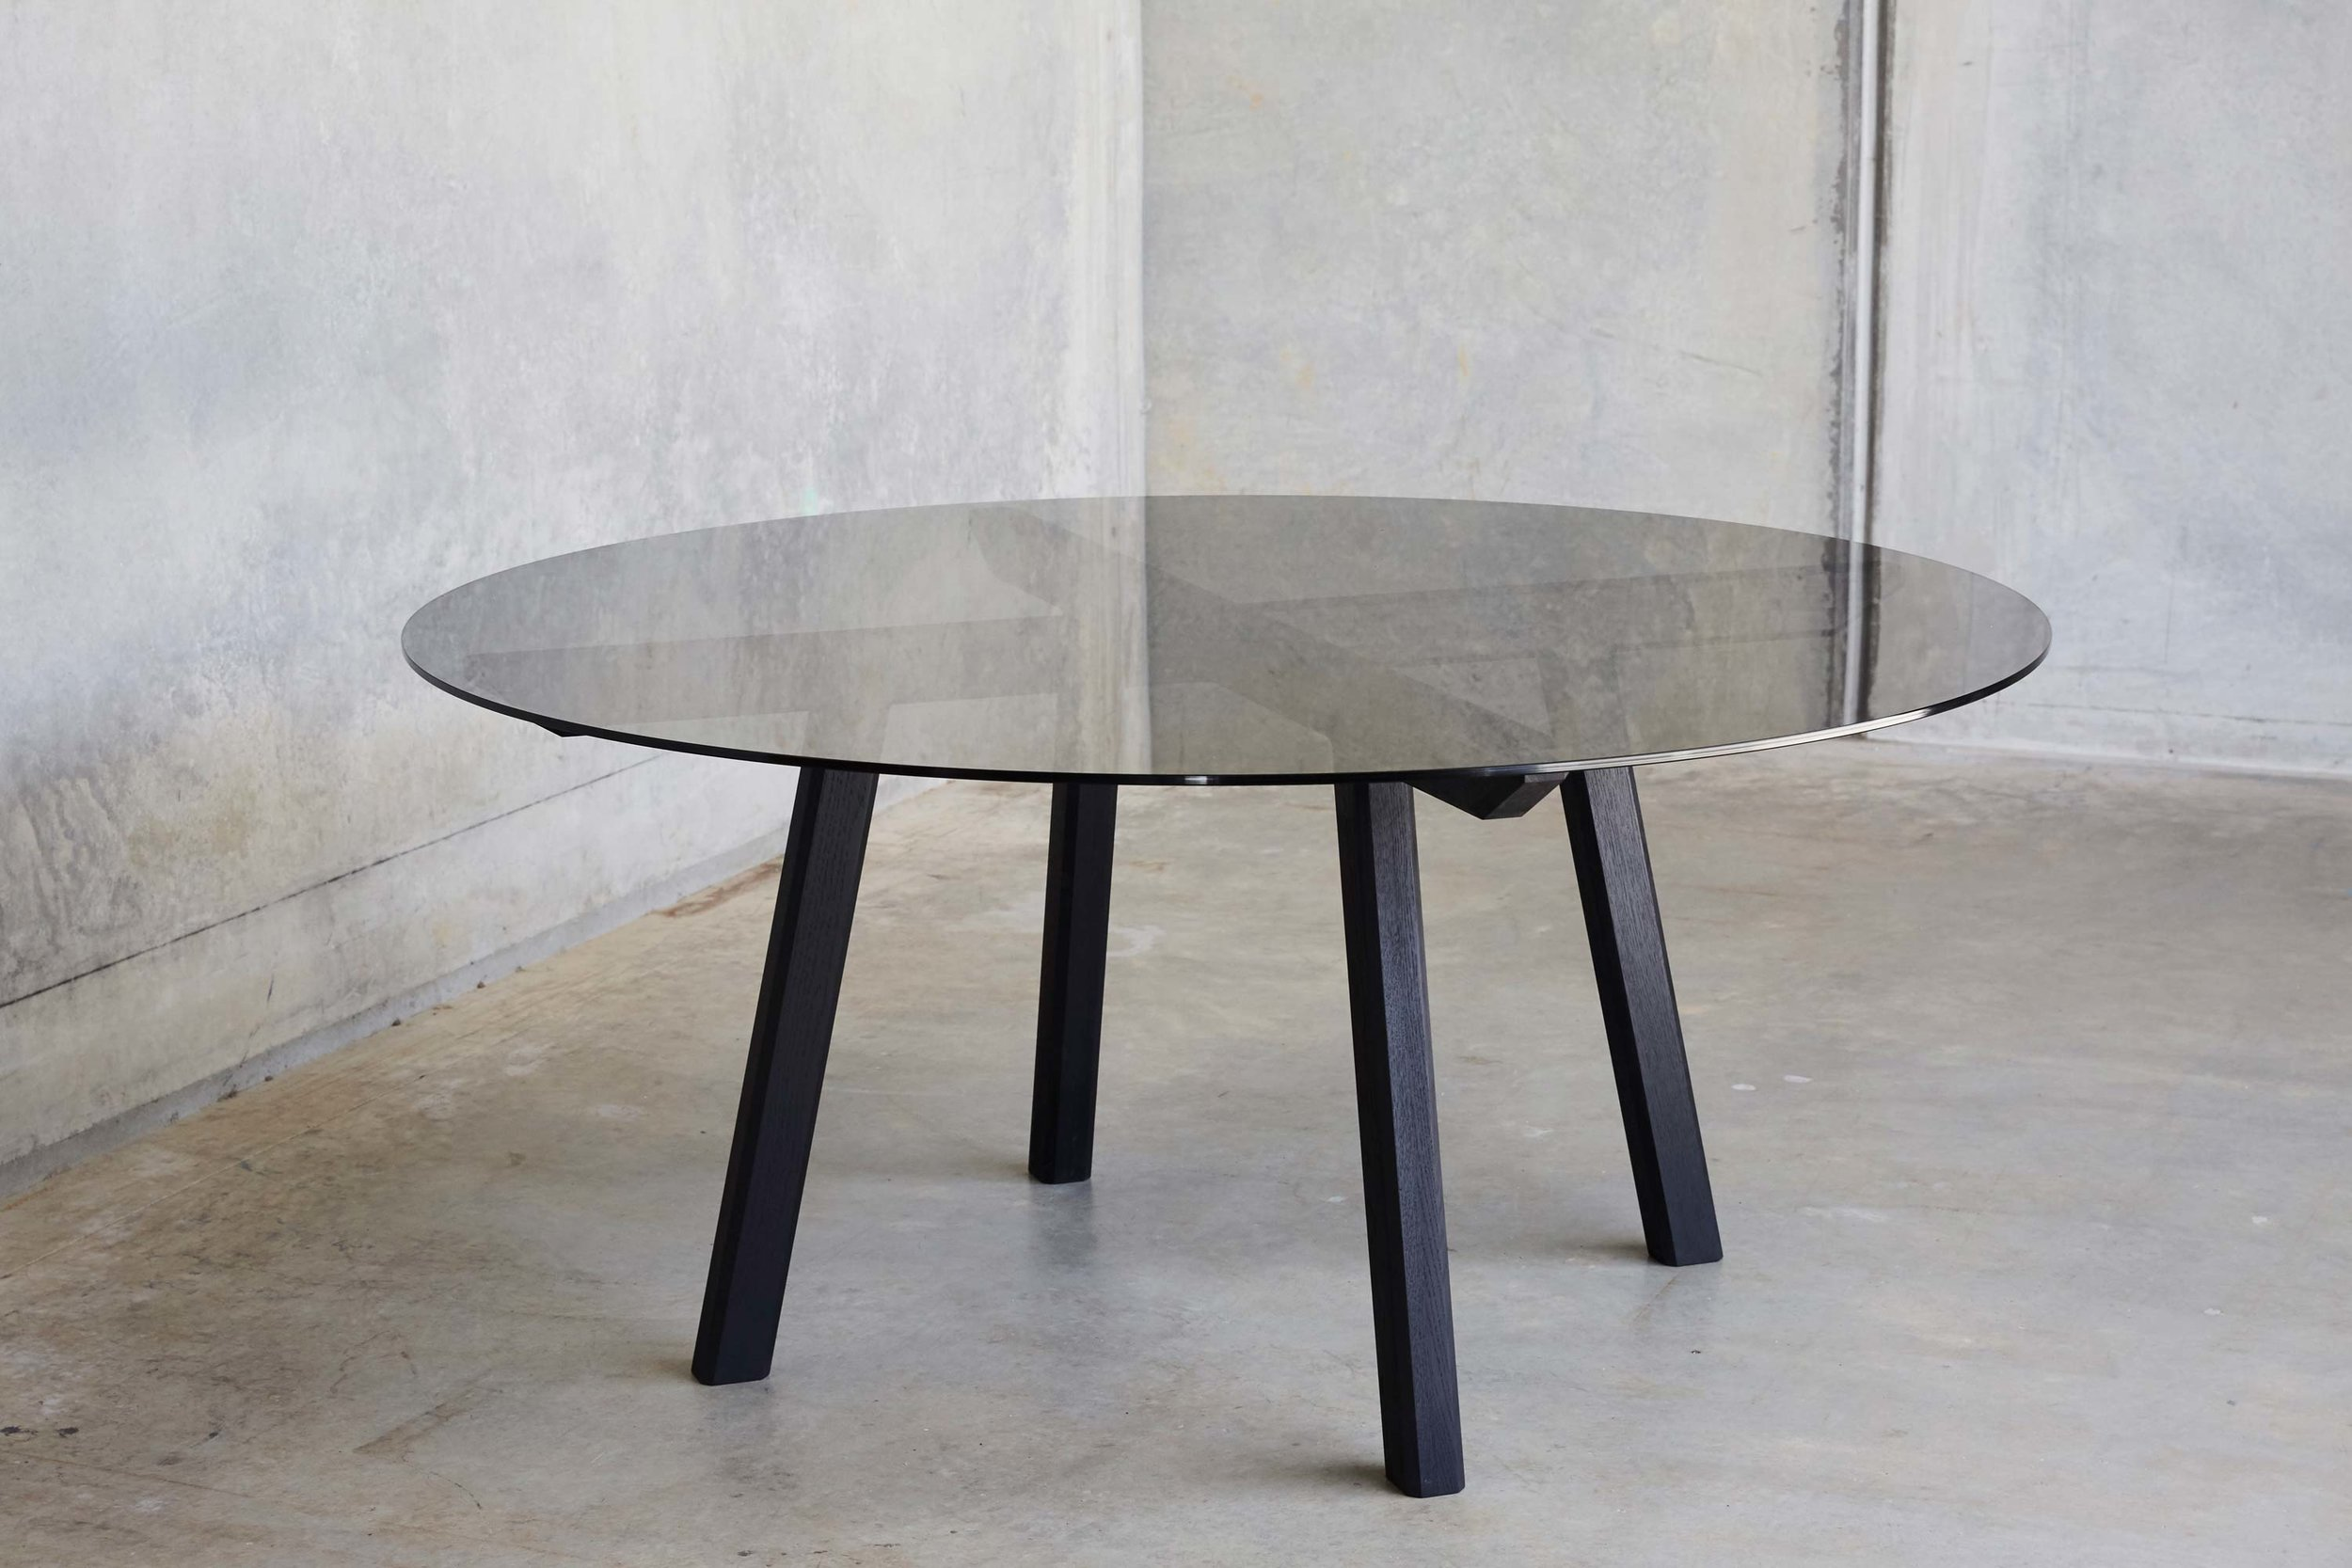 Apartment Table by Mast Furniture. Modern, handmade furniture.